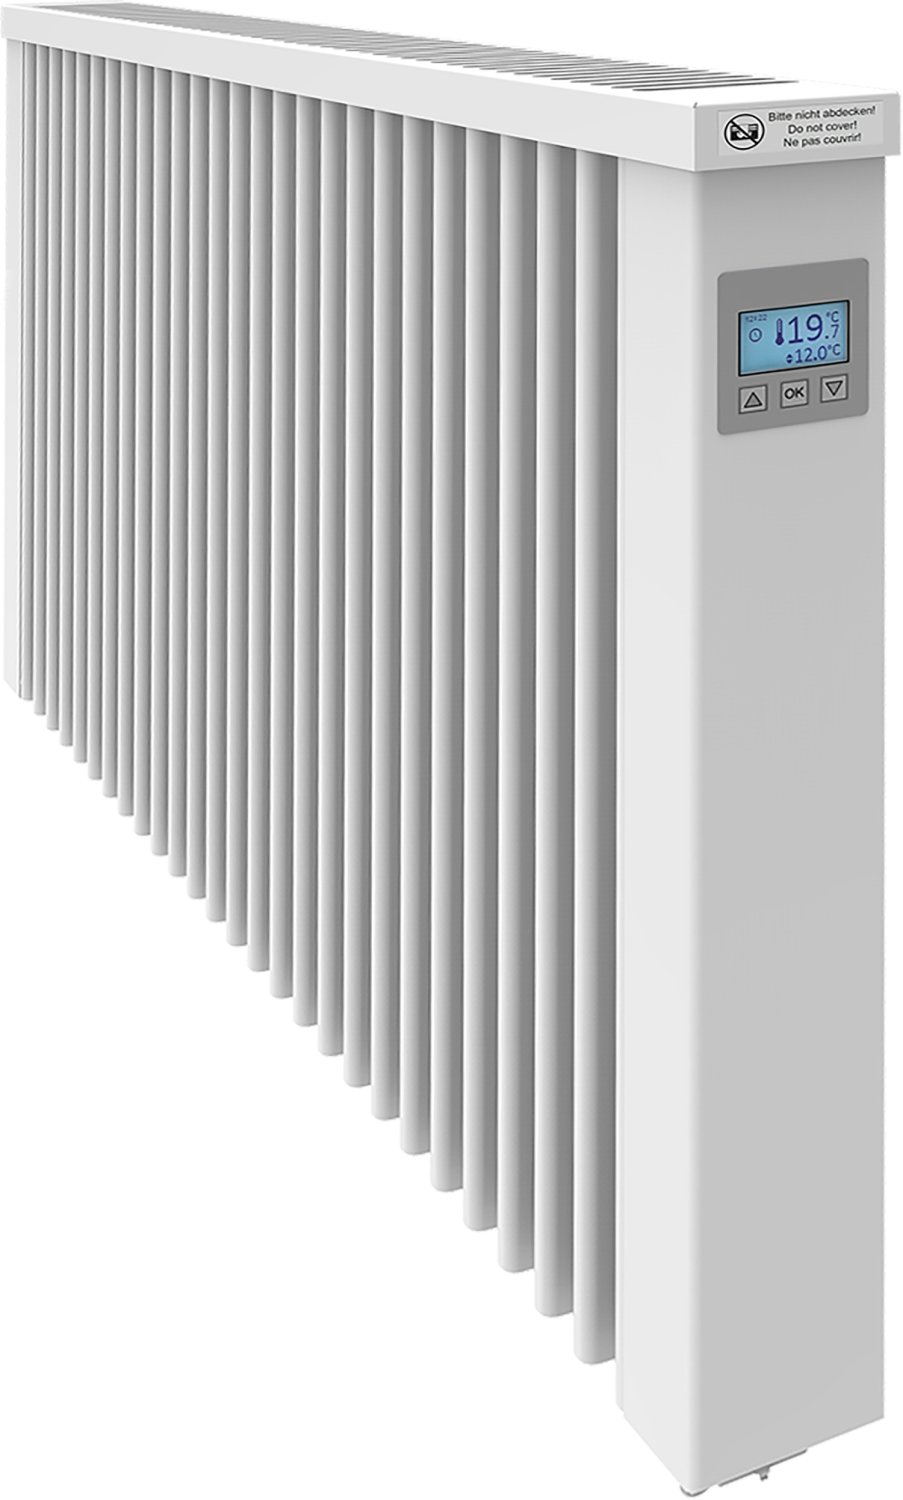 Wattage Radiator Electrorad Aeroflow Electric Radiators Heater Shop